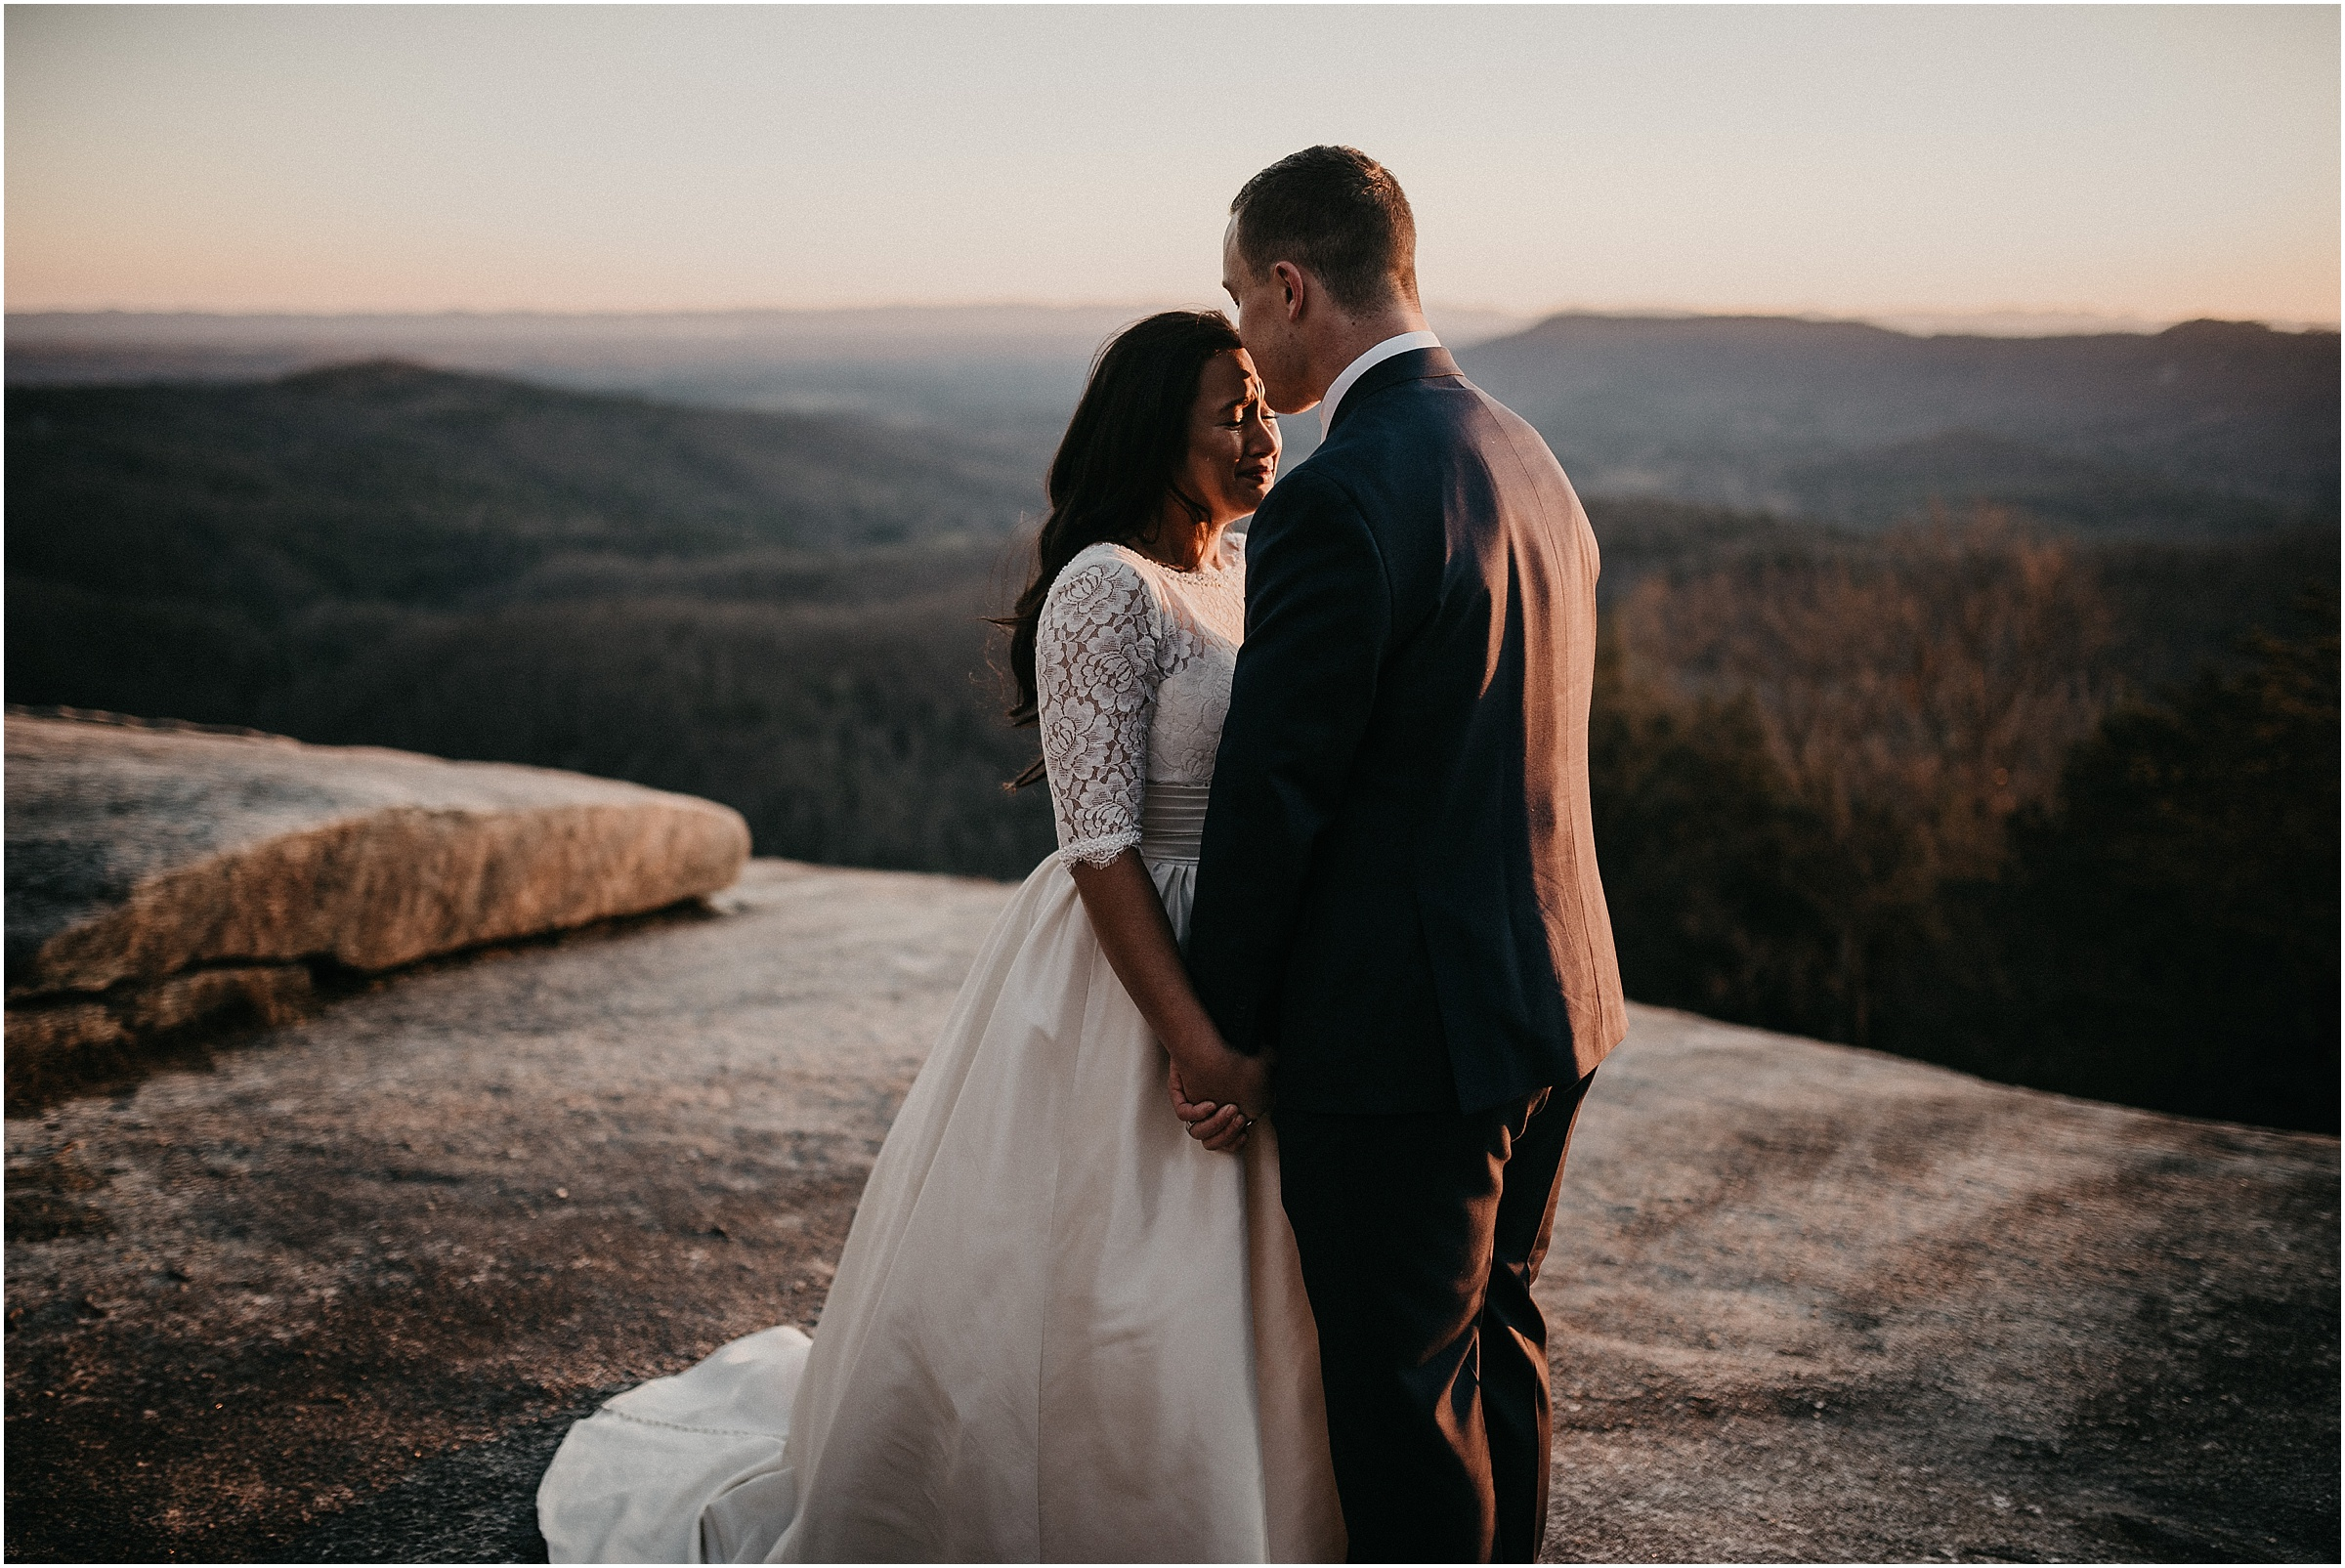 Stone_Mountain_NC_Elopement_54.JPG